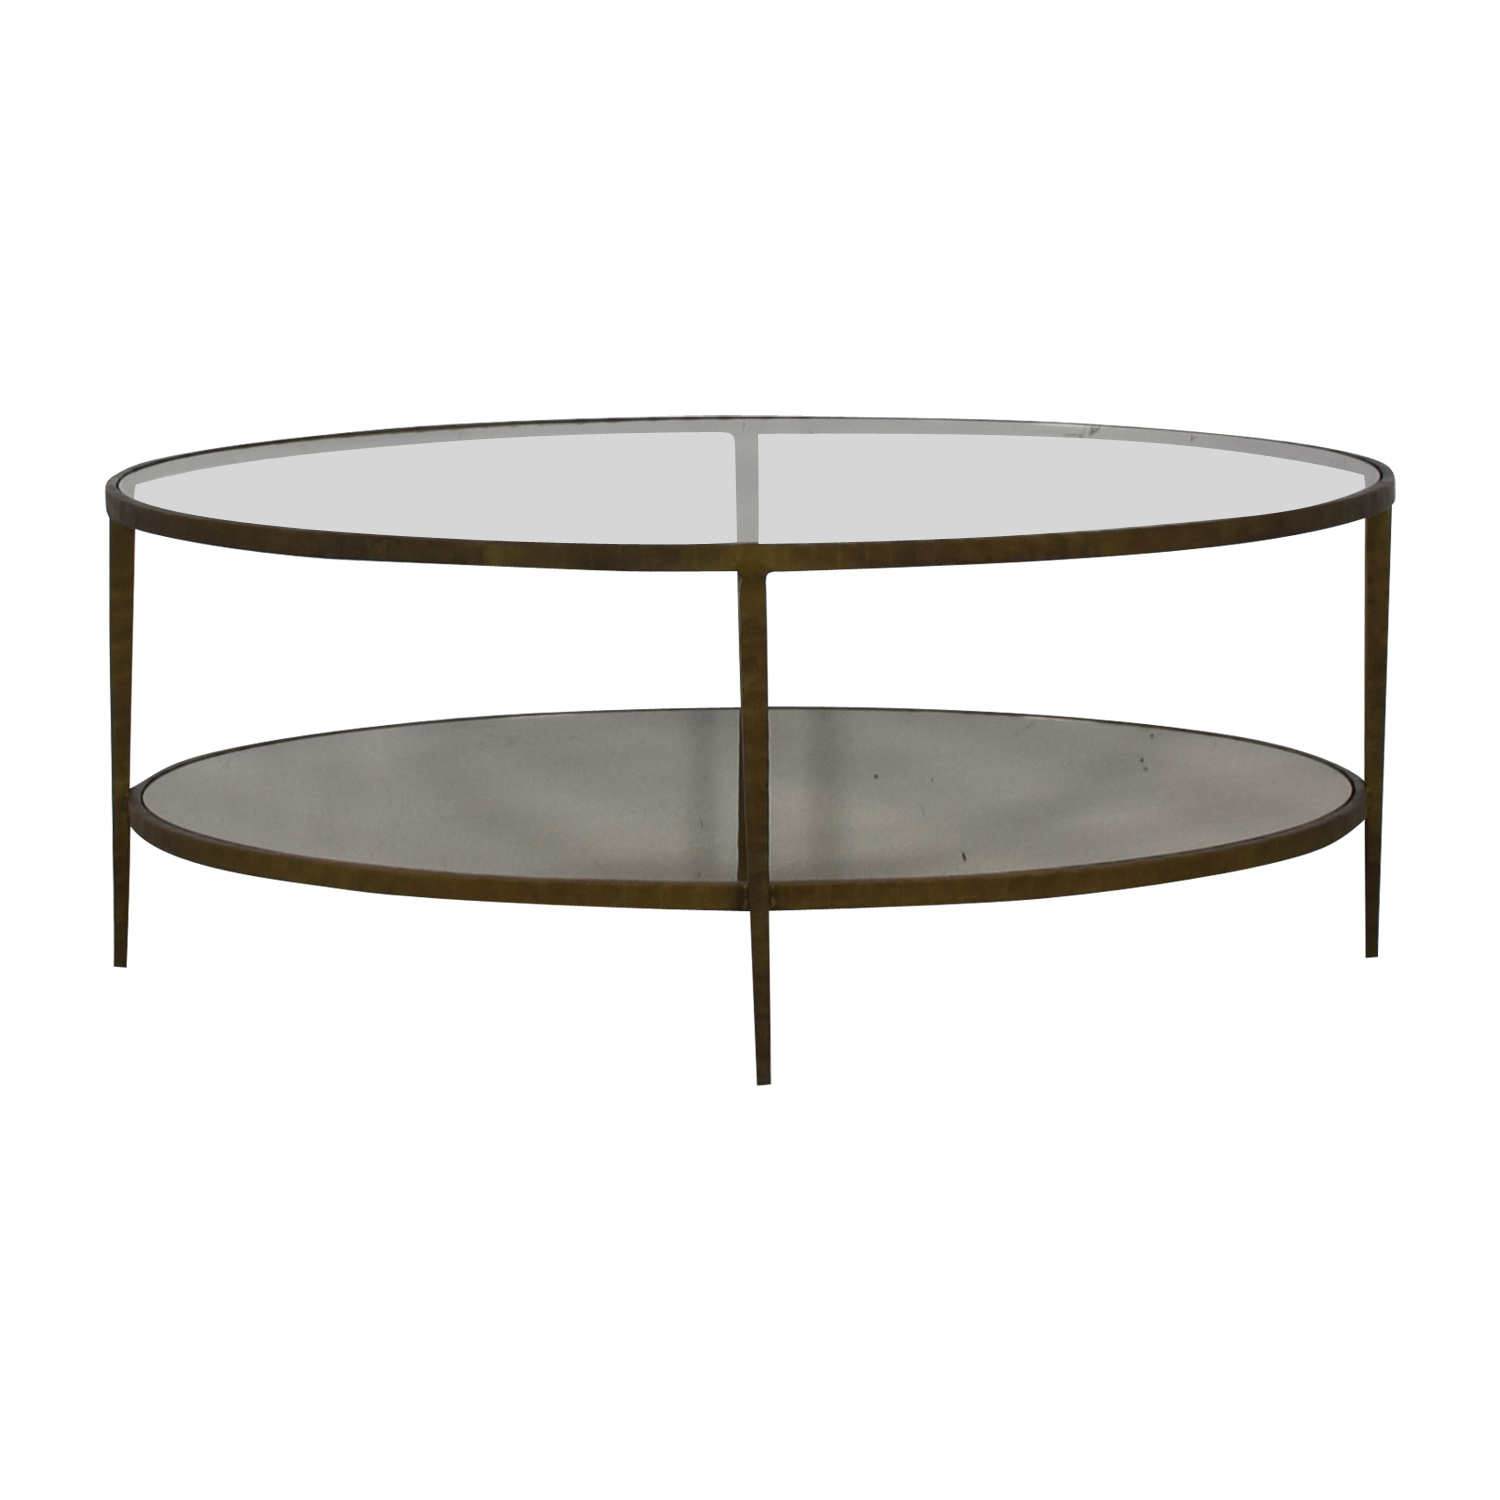 shop Crate & Barrel Crate & Barrel Clairemont Oval Coffee Table online